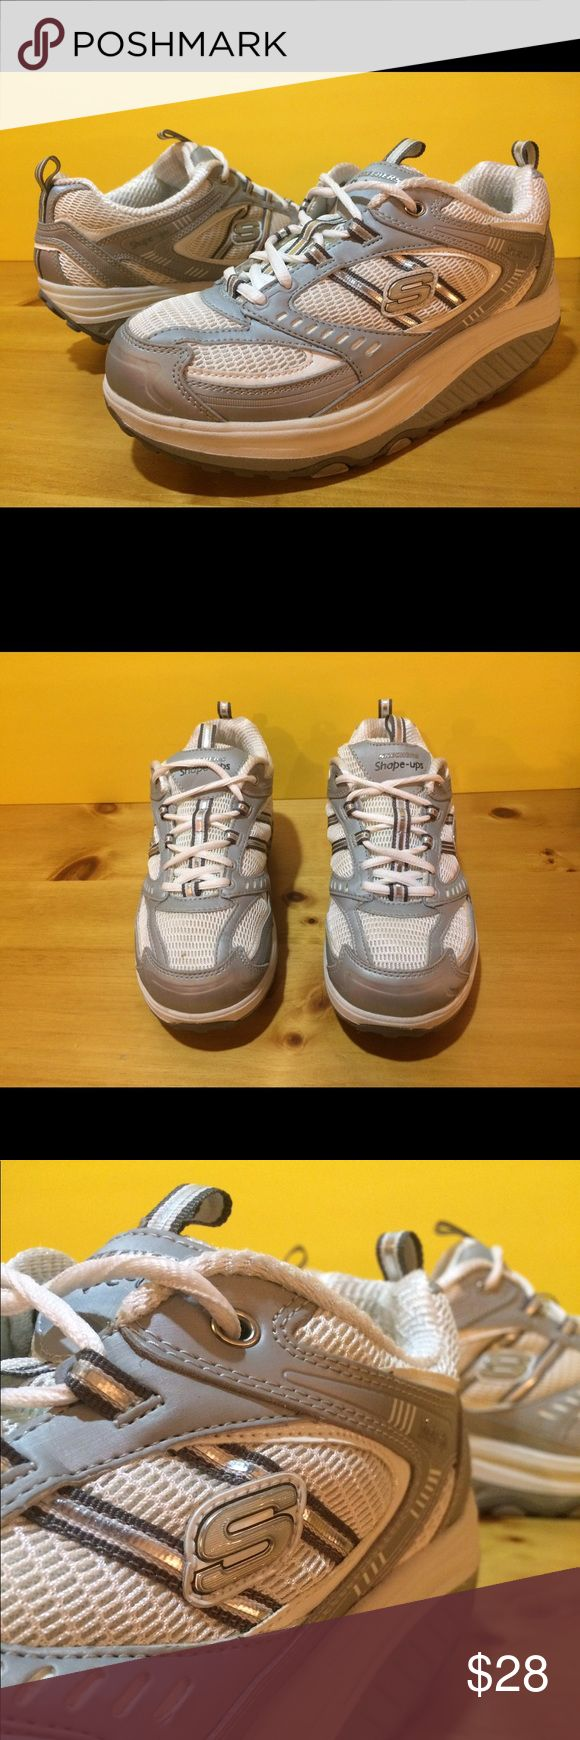 Women's Size 8 Silver Skechers Shape Ups Shoes Women's size 8 silver Skechers Shape-Ups shoes. See photos and please message with any questions! :) Skechers Shoes Sneakers